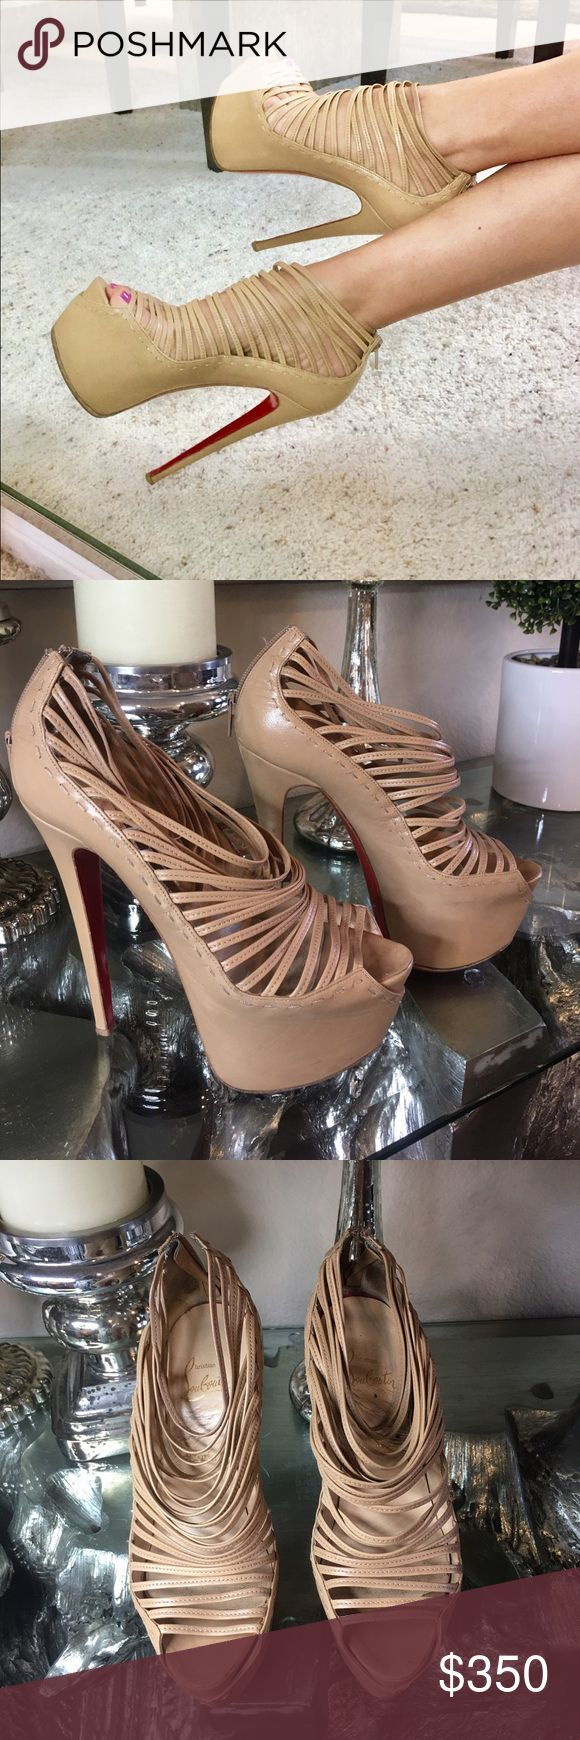 Christian Louboutin daffodile nude Ankle booties Authentic Christian Louboutin daffodile nude ankle booties. Sole has been redone by professional cobbler.  Some nicks and scratches but could be cleaned. Comes with box no bag. Christian Louboutin Shoes Ankle Boots & Booties